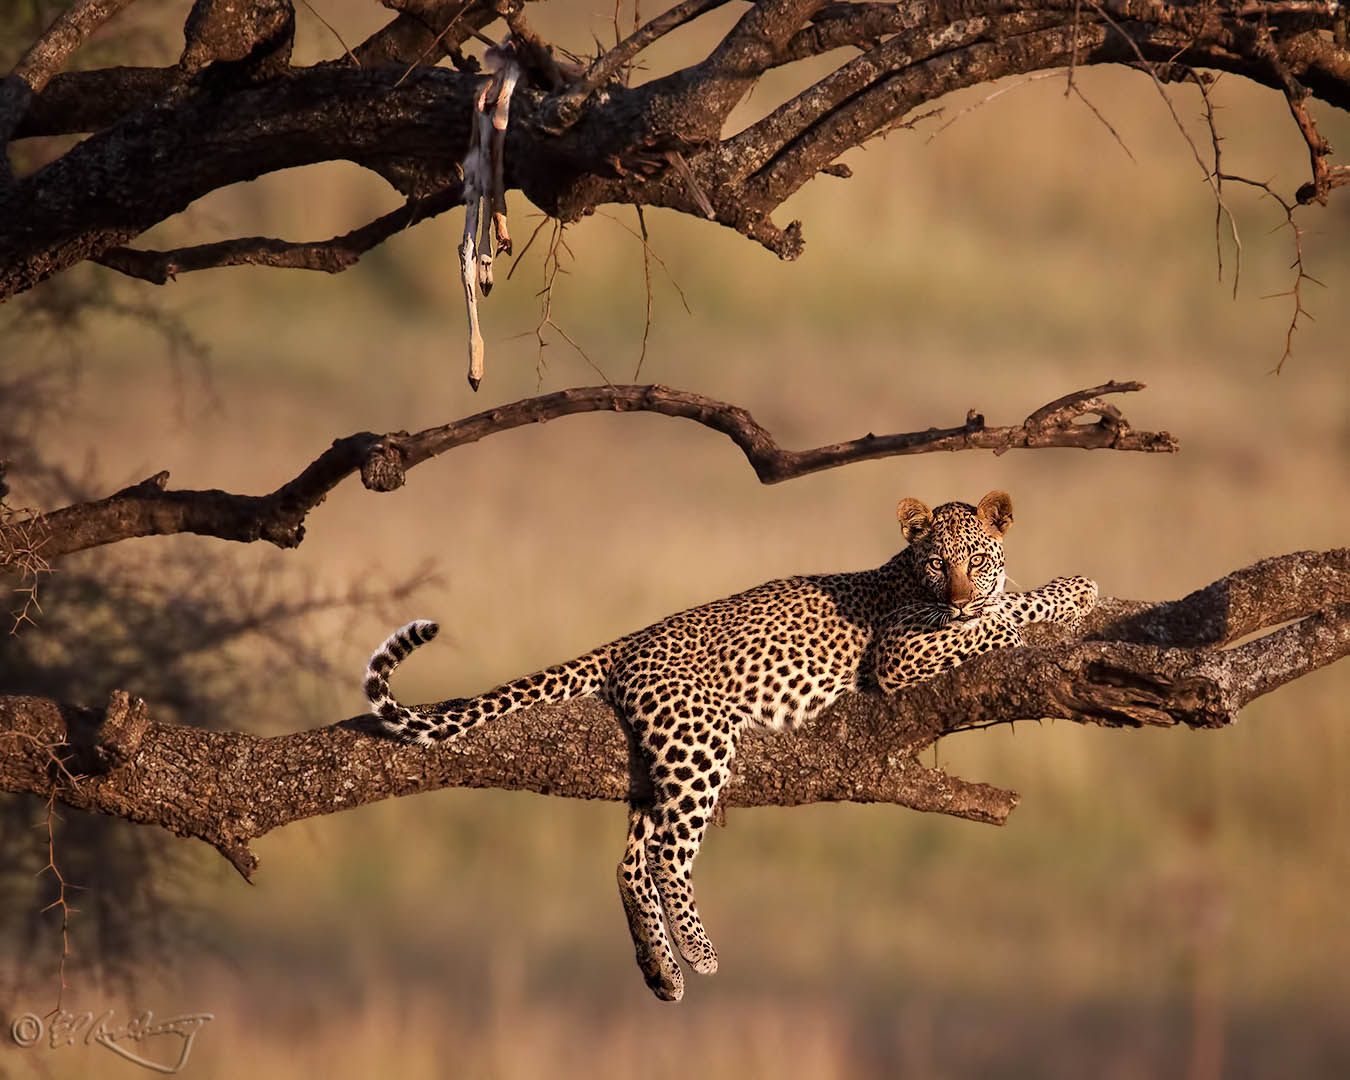 Young_Leopard_in_tree-c5